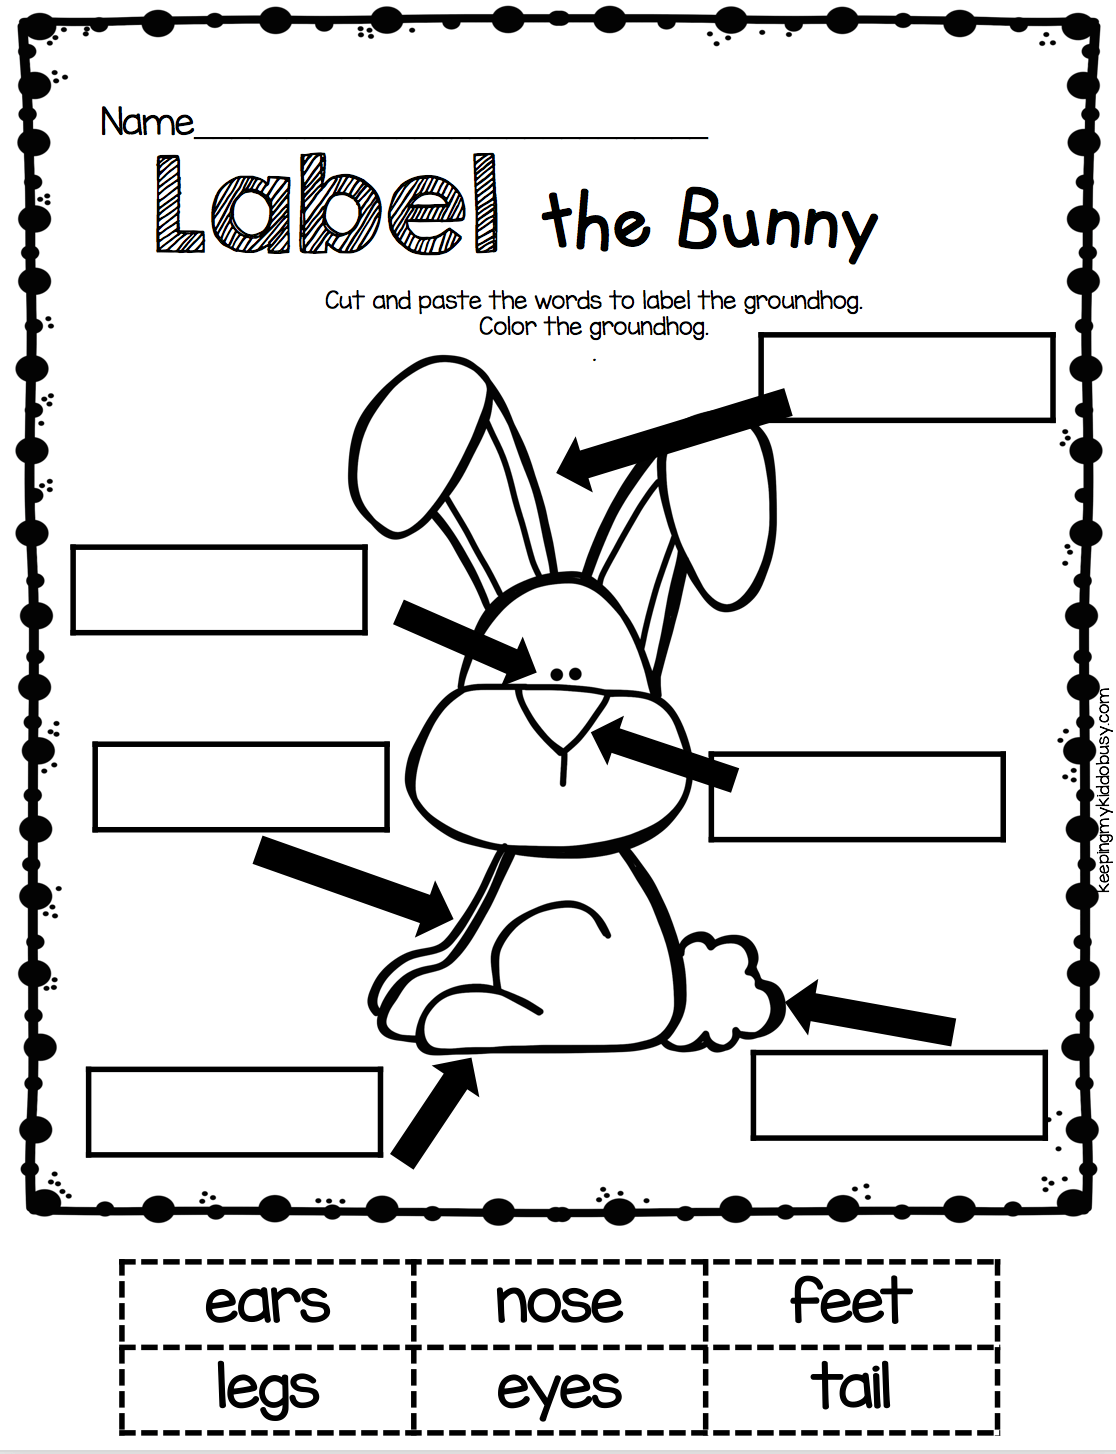 Body Part Worksheet For Kindergarten